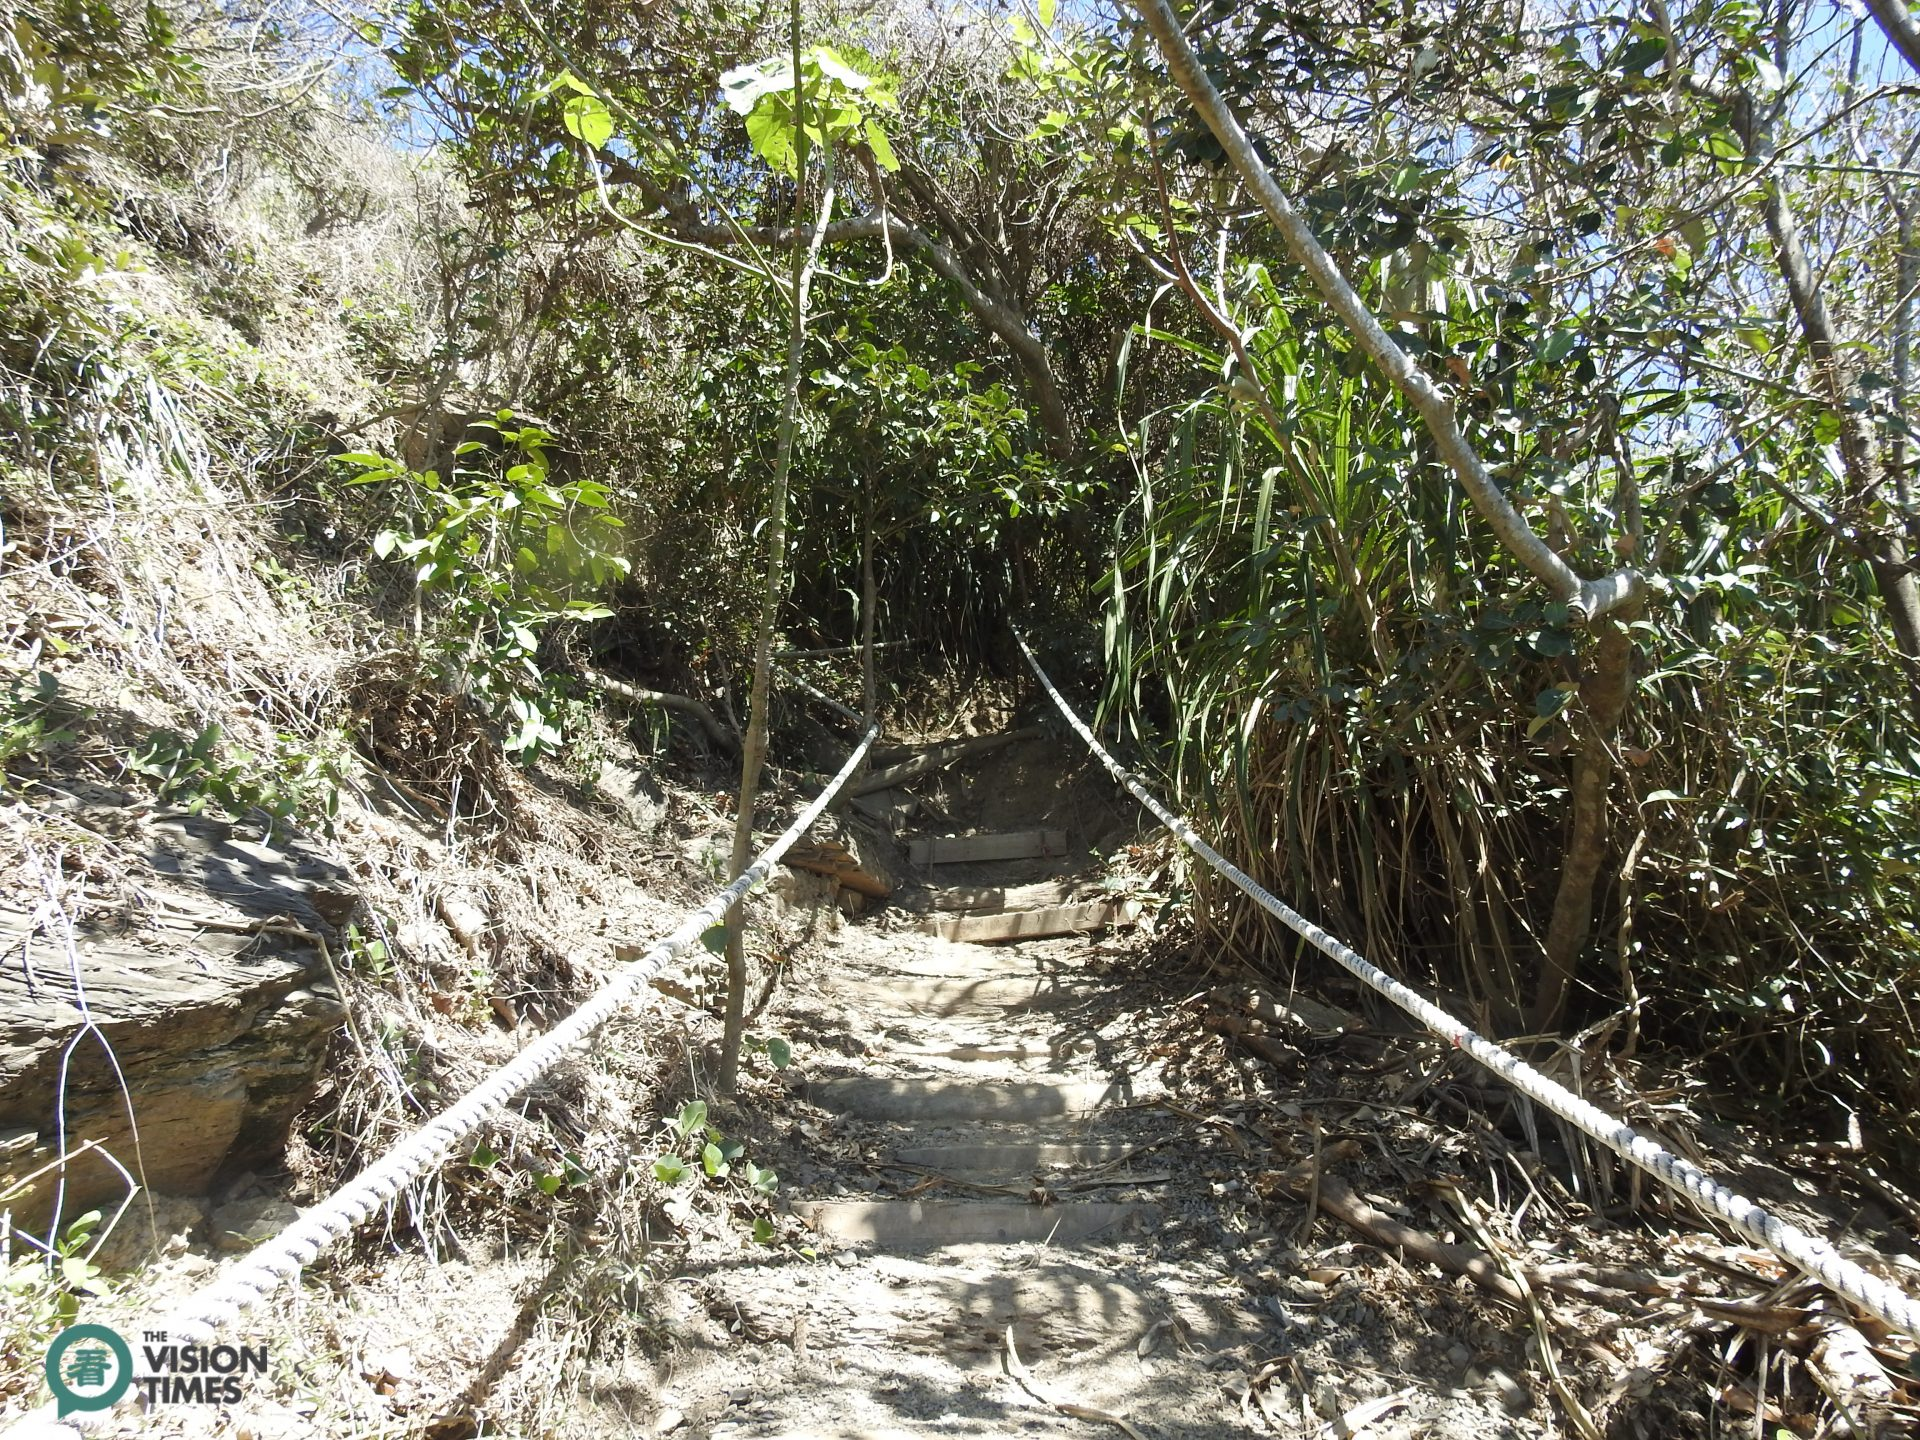 There are many steep slopes along Alangyi Ancient Trail. (Image: Billy Shyu / Vision Times)